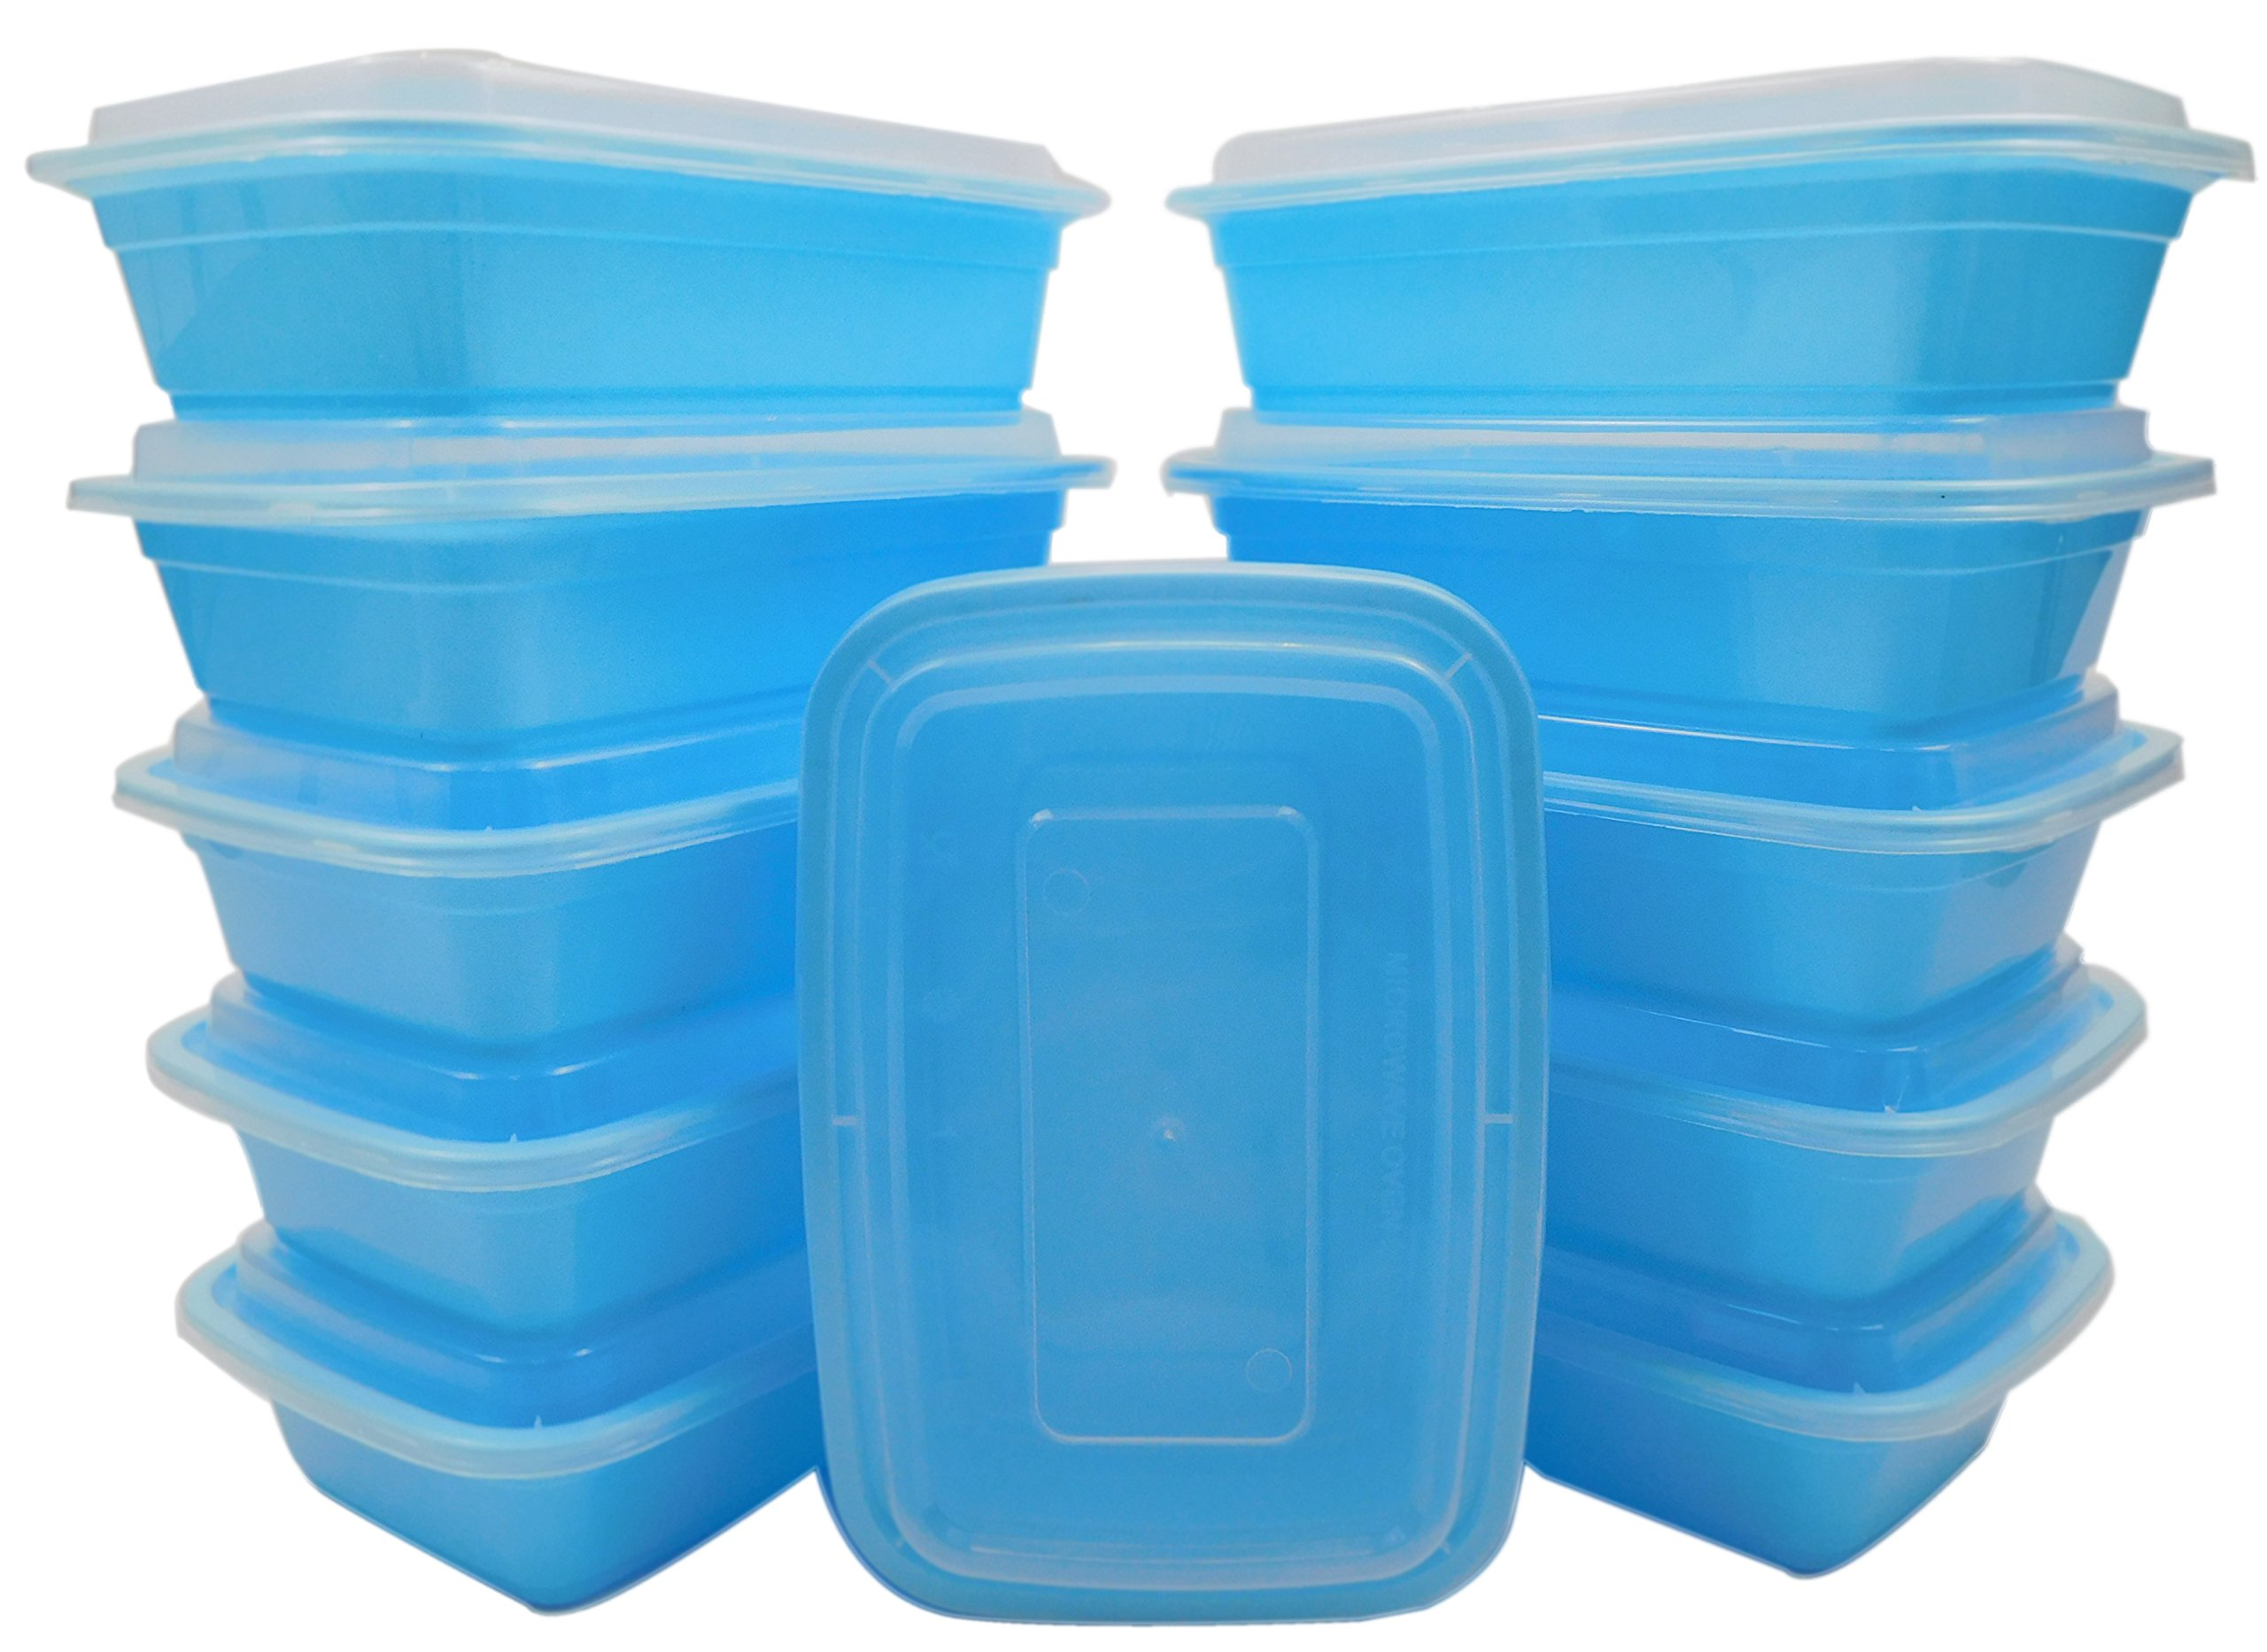 Table To Go 300-Pack Bento Lunch Boxes with Lids (1 Compartment/ 34 oz) | Microwaveable, Dishwasher & Freezer Safe Meal Prep Containers | Reusable Dish Set for Prepping, Portion Control & More (Blue)